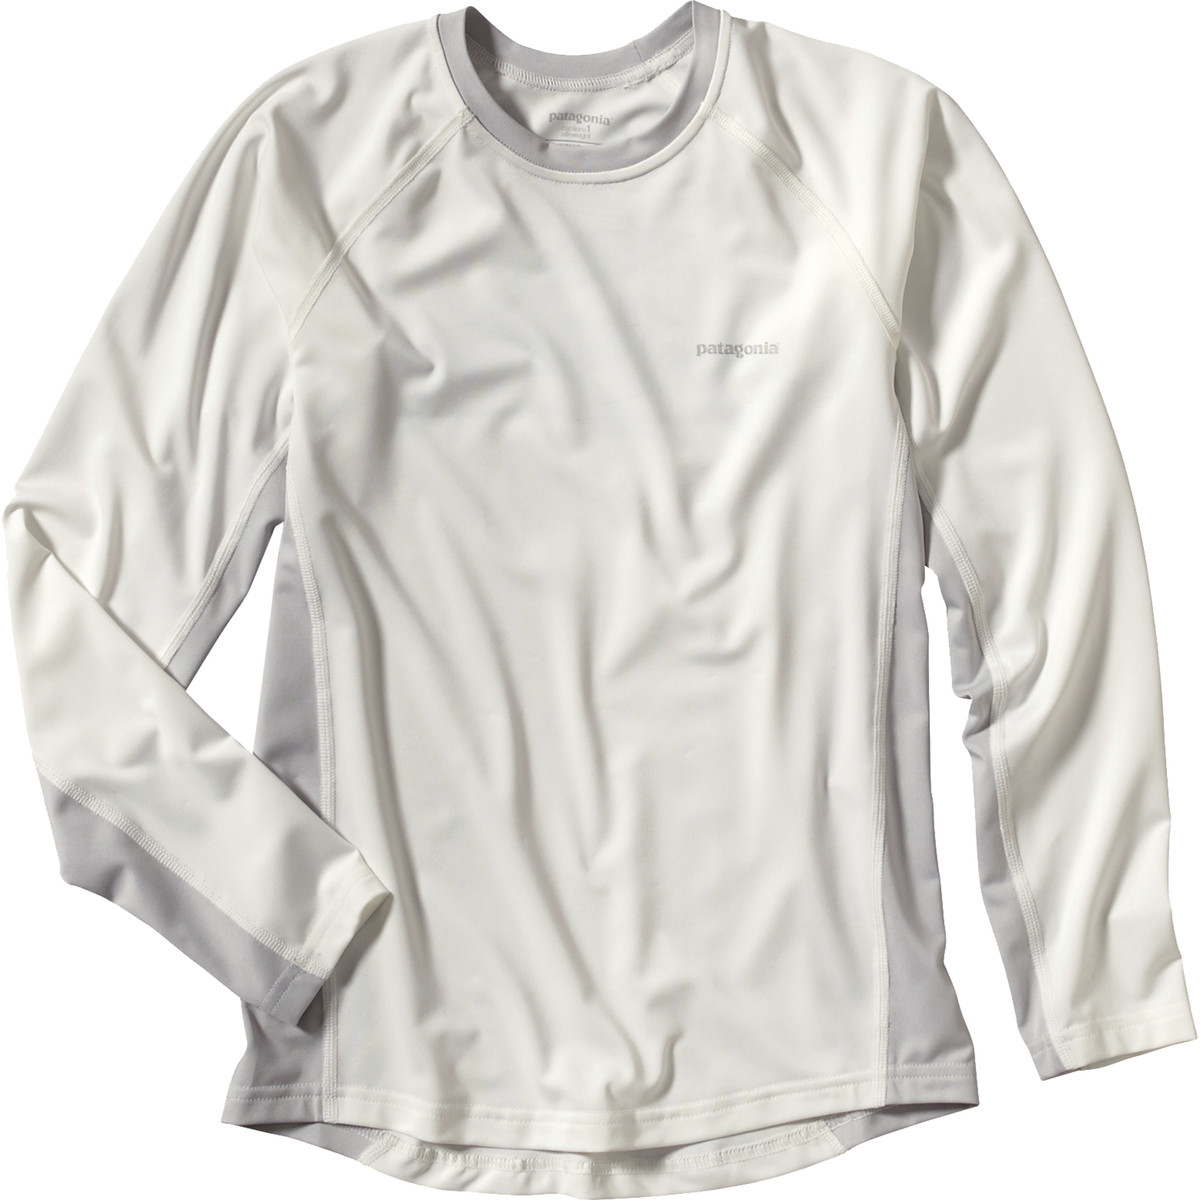 Patagonia Long-Sleeved Capilene 1 Silkweight Rashguard